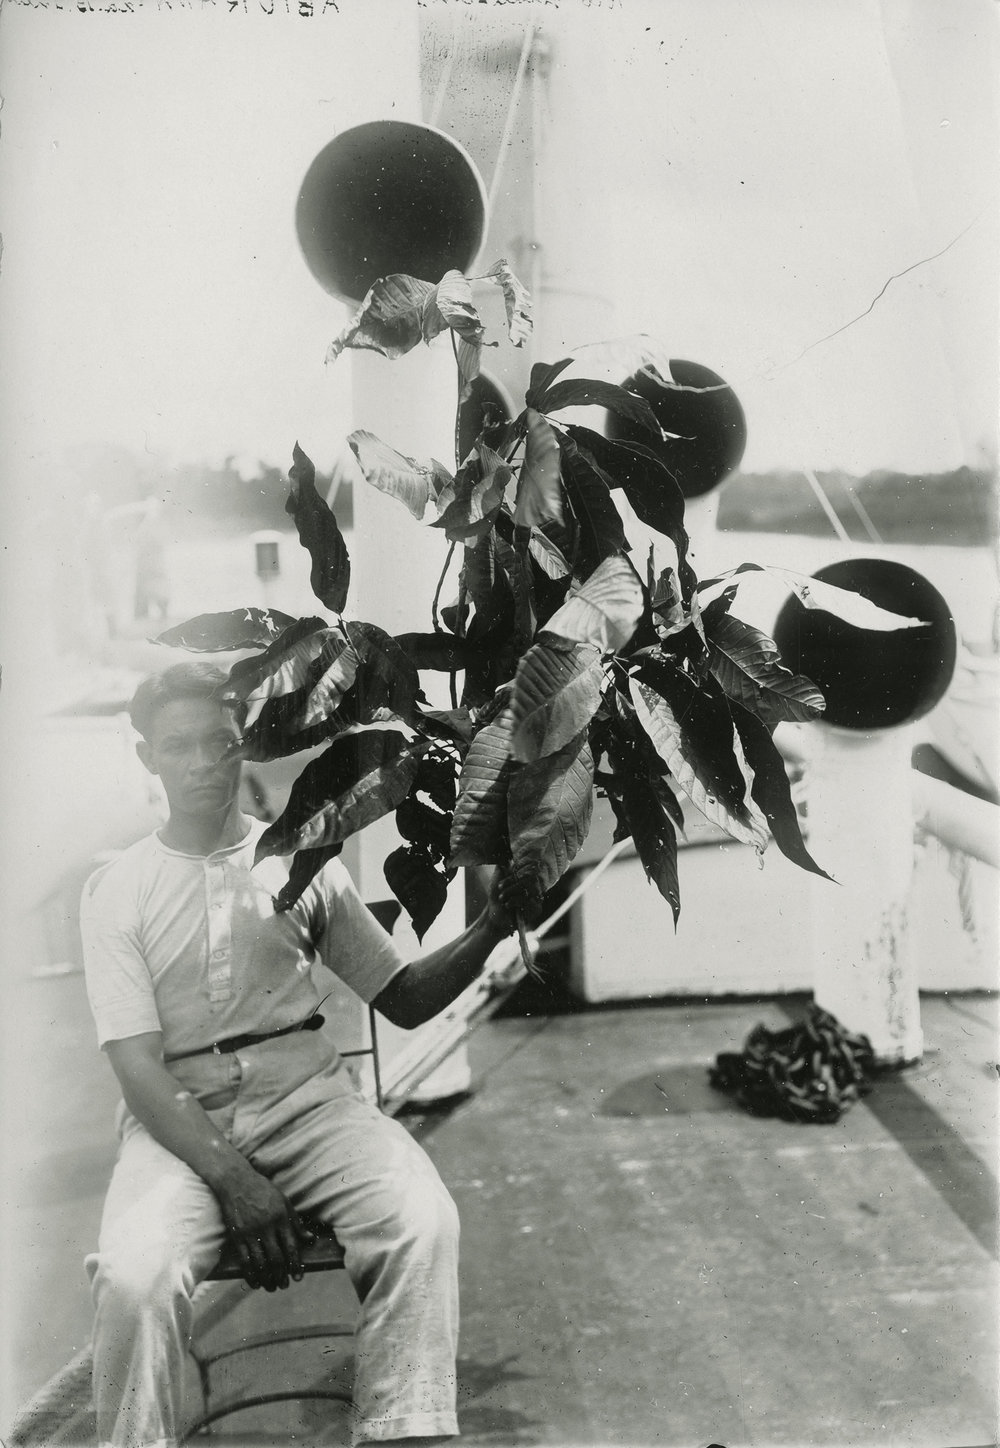 """(research image) Untitled, Amazon, Brazil, 1924. Typed on verso: """"Aburana leaves from near Rio Inauhiny on Purus River."""" 4.5 x 6"""" Gelatin silver fiber print. Creator: Cortland B. Manifold. Courtland Manifold Papers, Archival Services, University Libraries, The University of Akron, Akron, Ohio."""